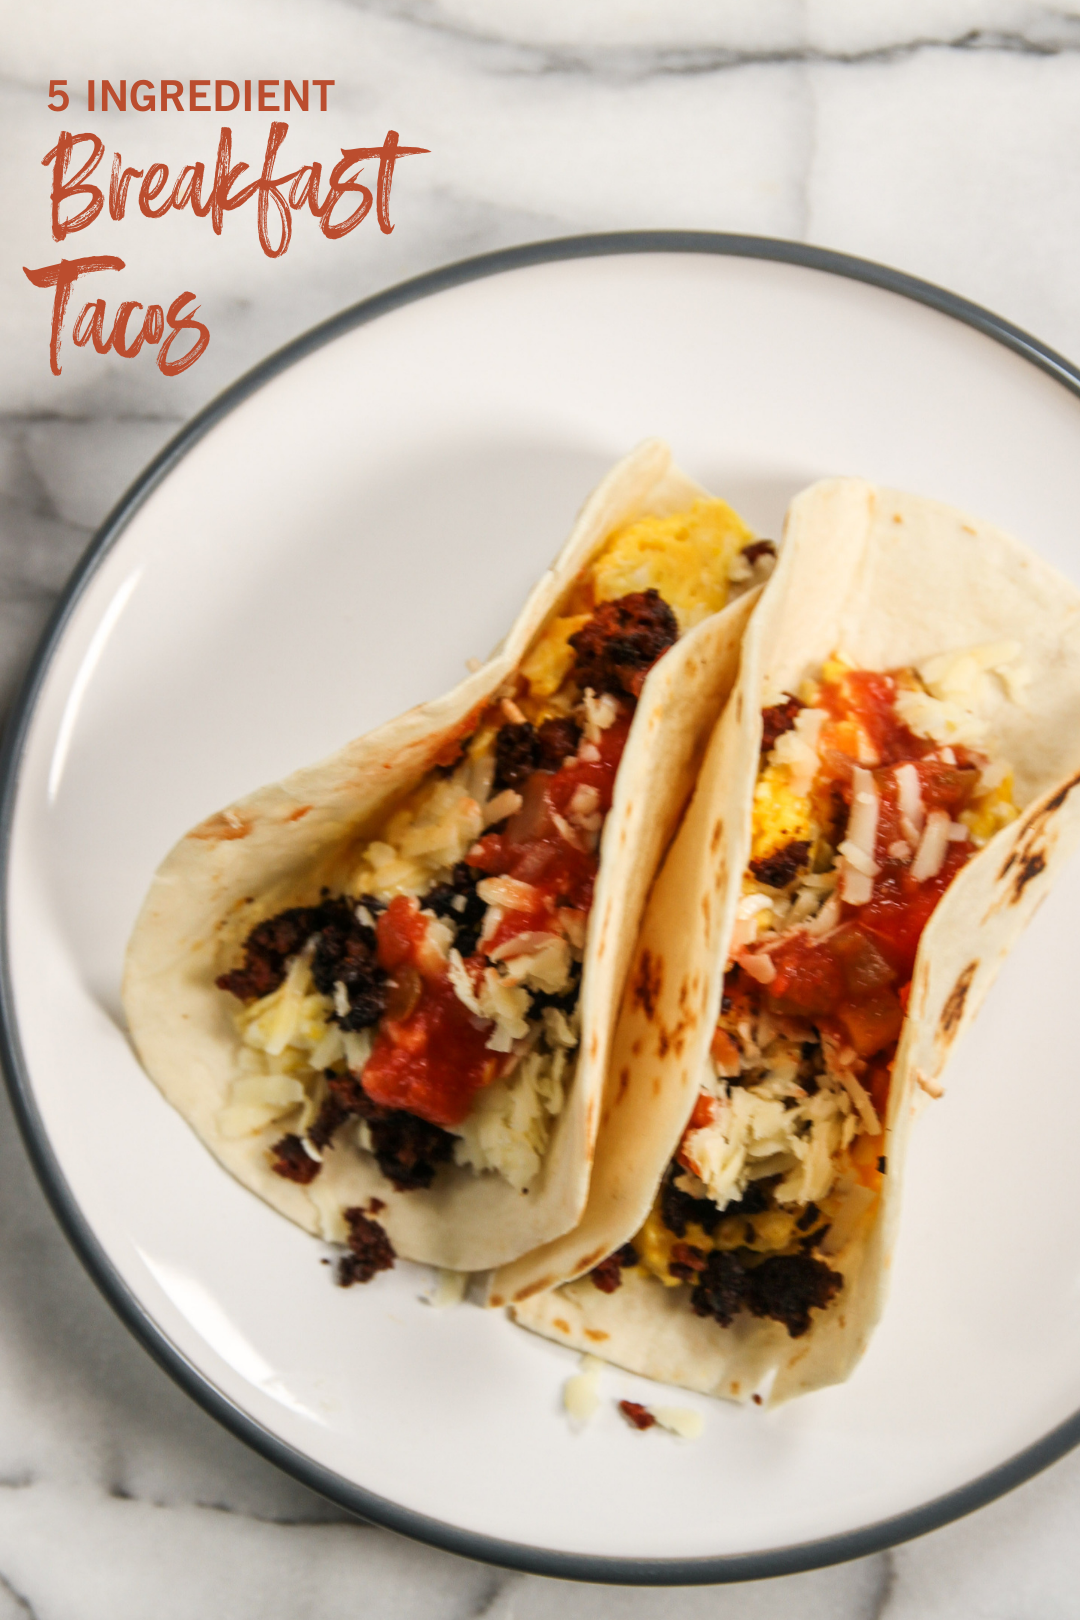 Two breakfast tacos on a white plate